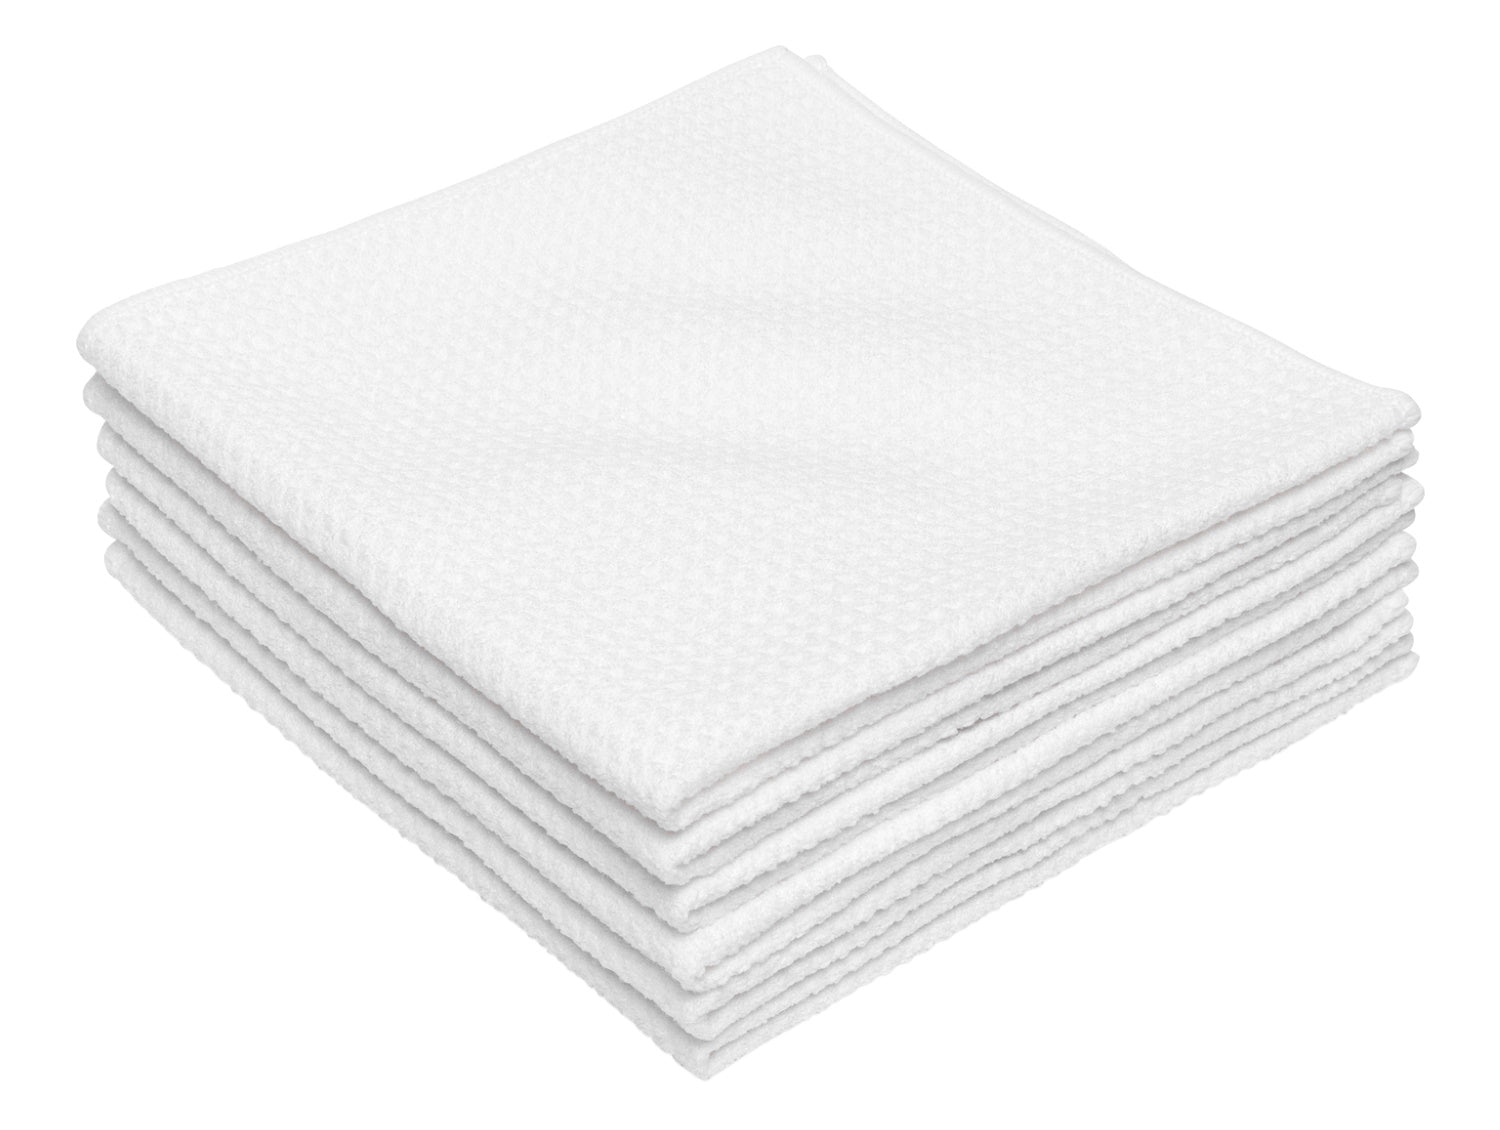 White Microfiber Waffle Weave Kitchen Towels